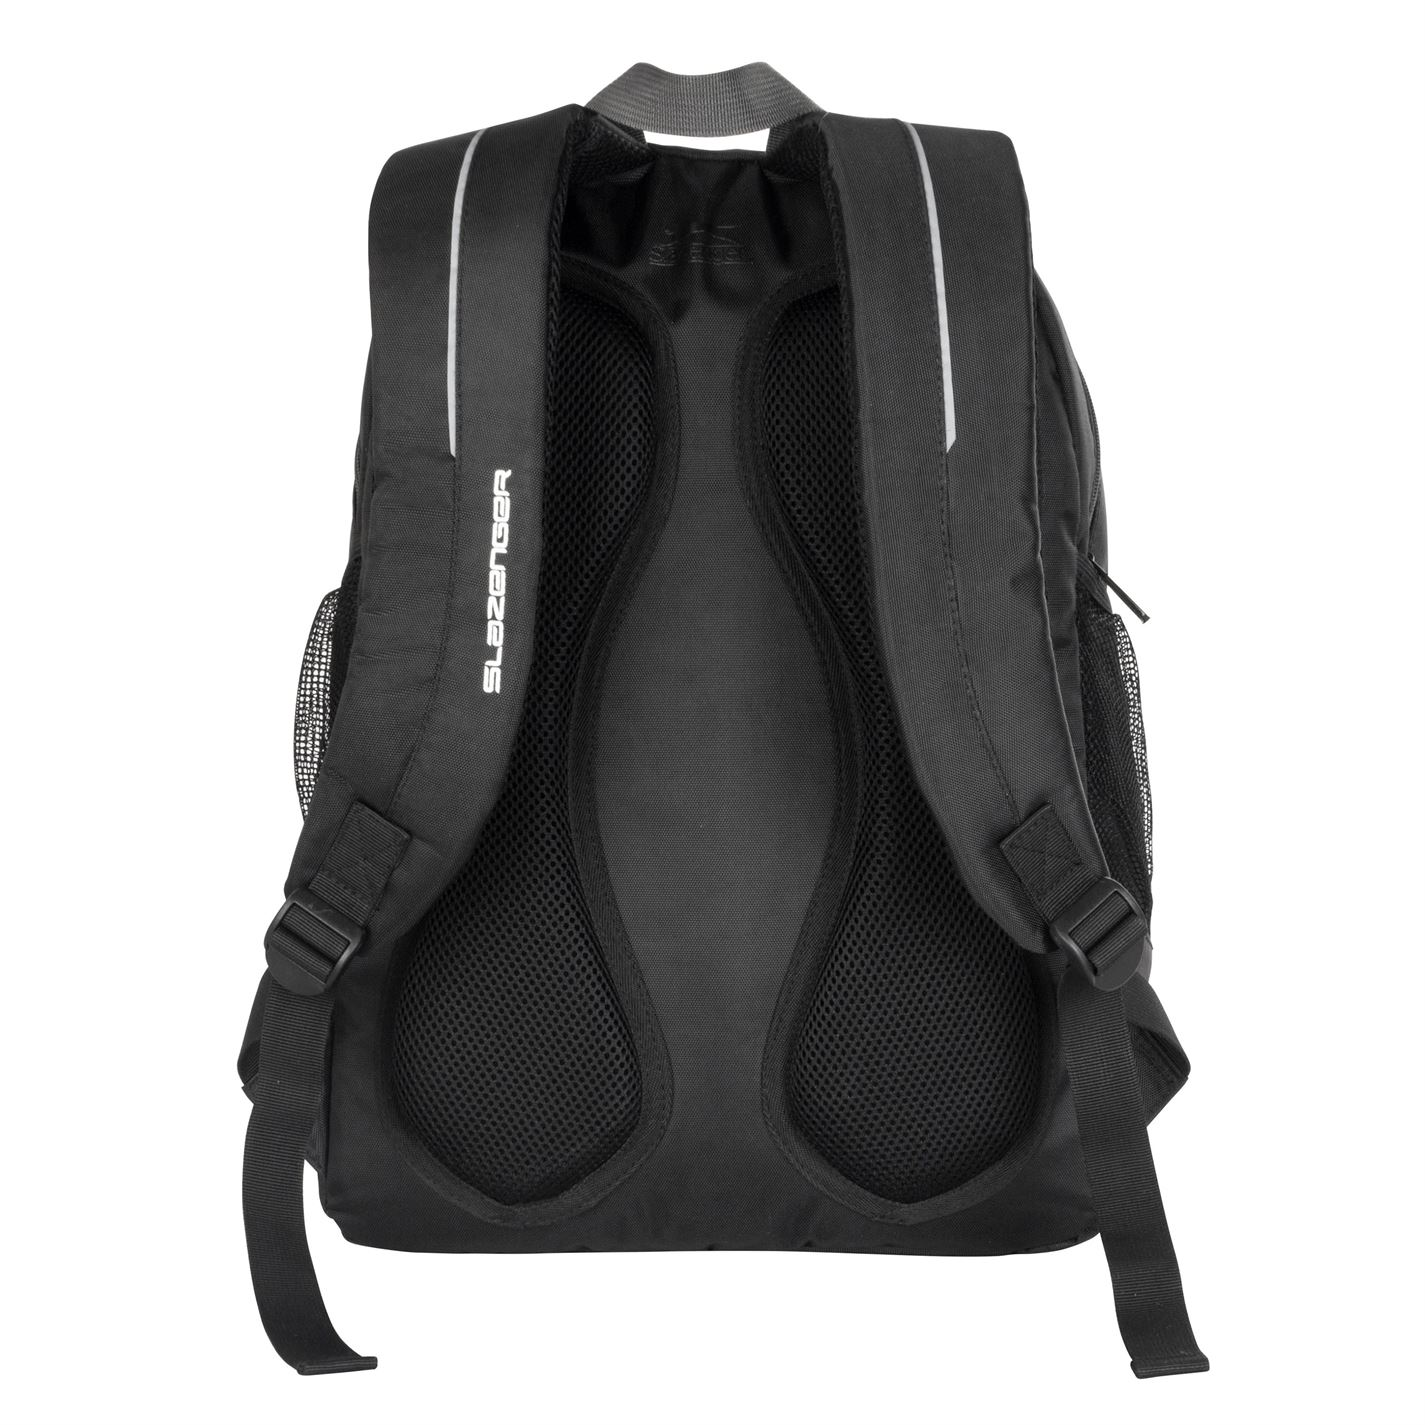 88f5c44456 Slazenger Ace Back Pack Travel Luggage Rucksack Casual Bag ...